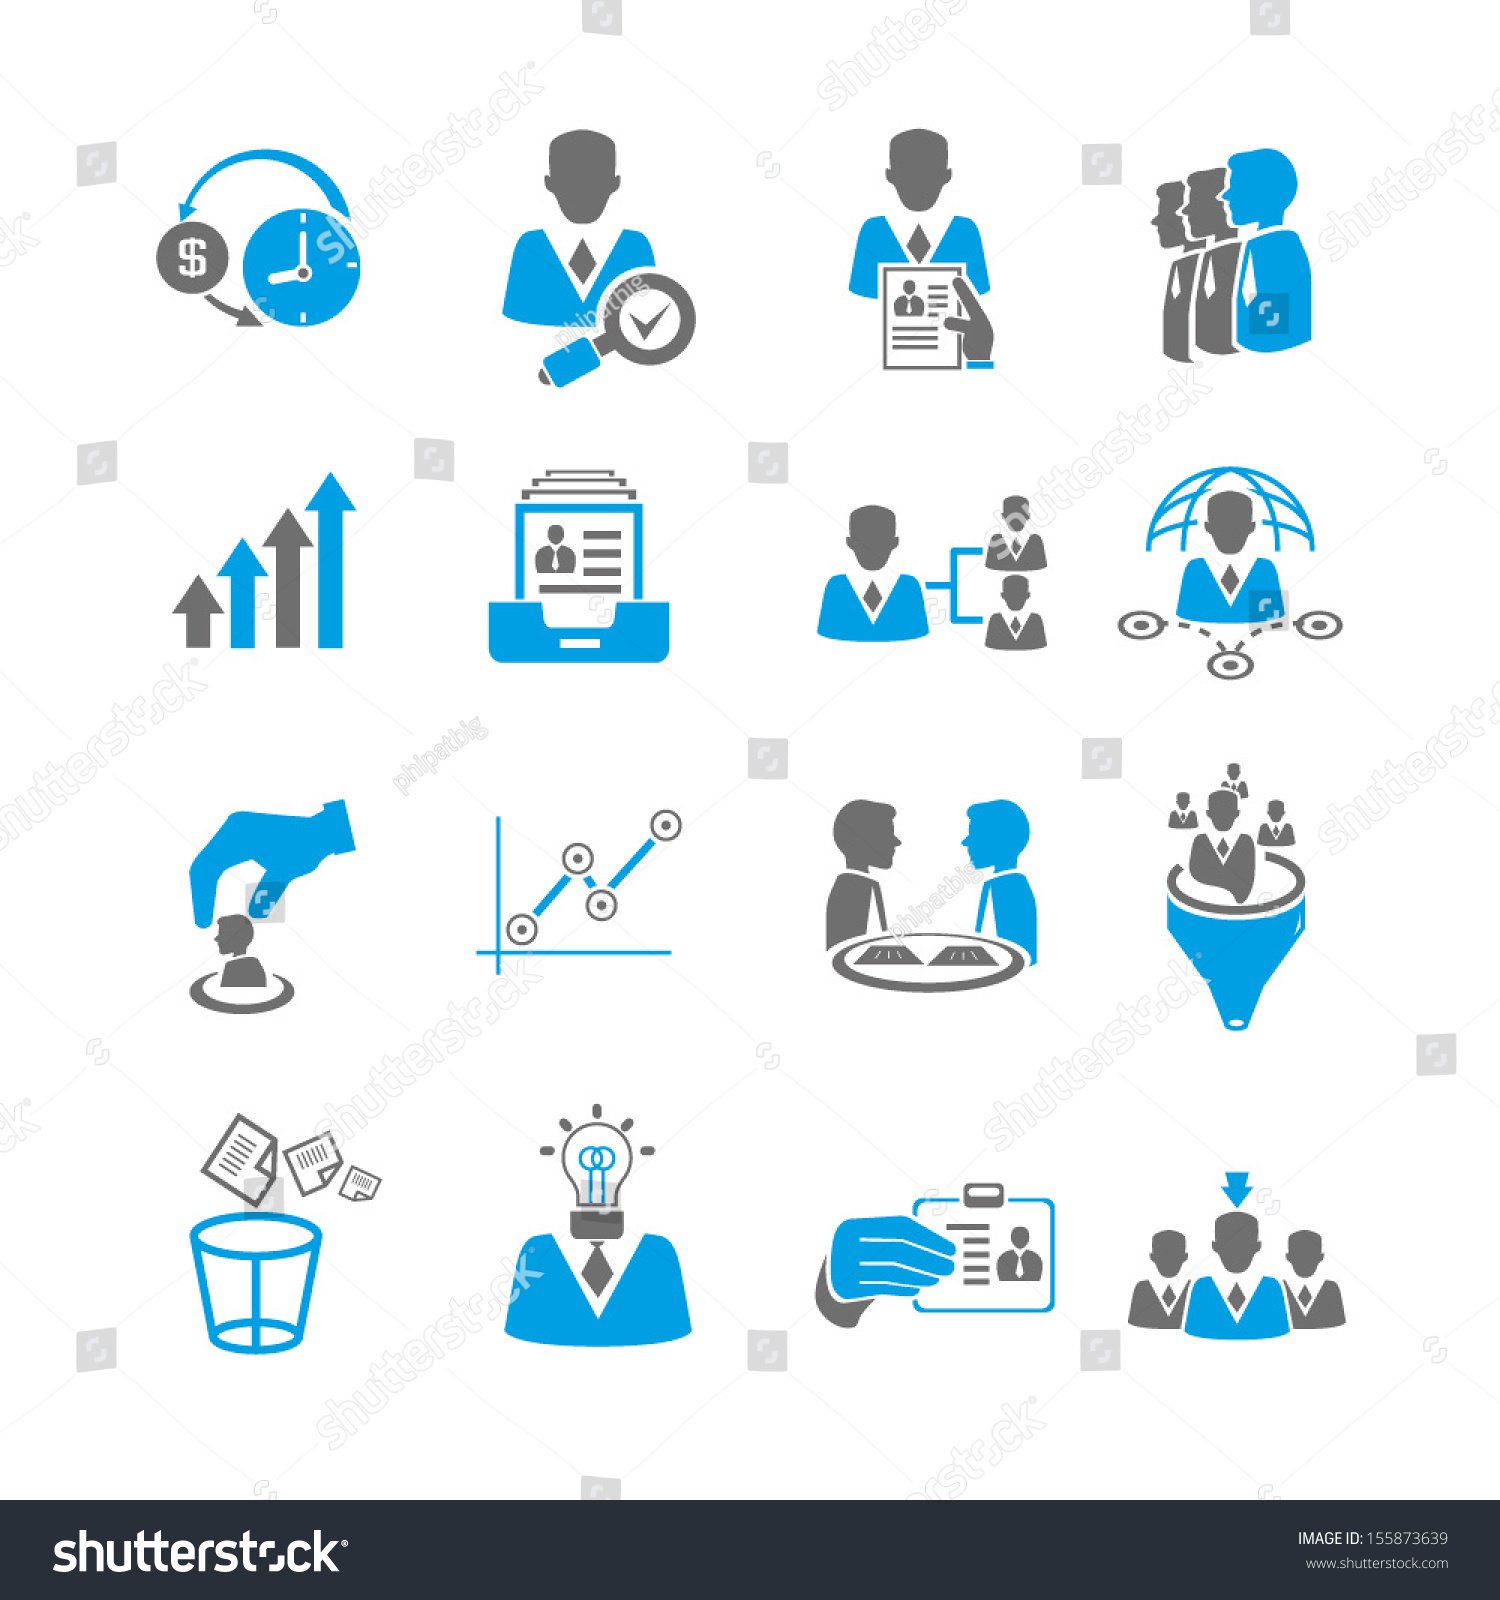 leadership and organization A good objective of leadership is to help those who are doing poorly to do well and to help those who are doing well to do even better -jim rohn the single biggest way to impact an organization is to focus on leadership development.